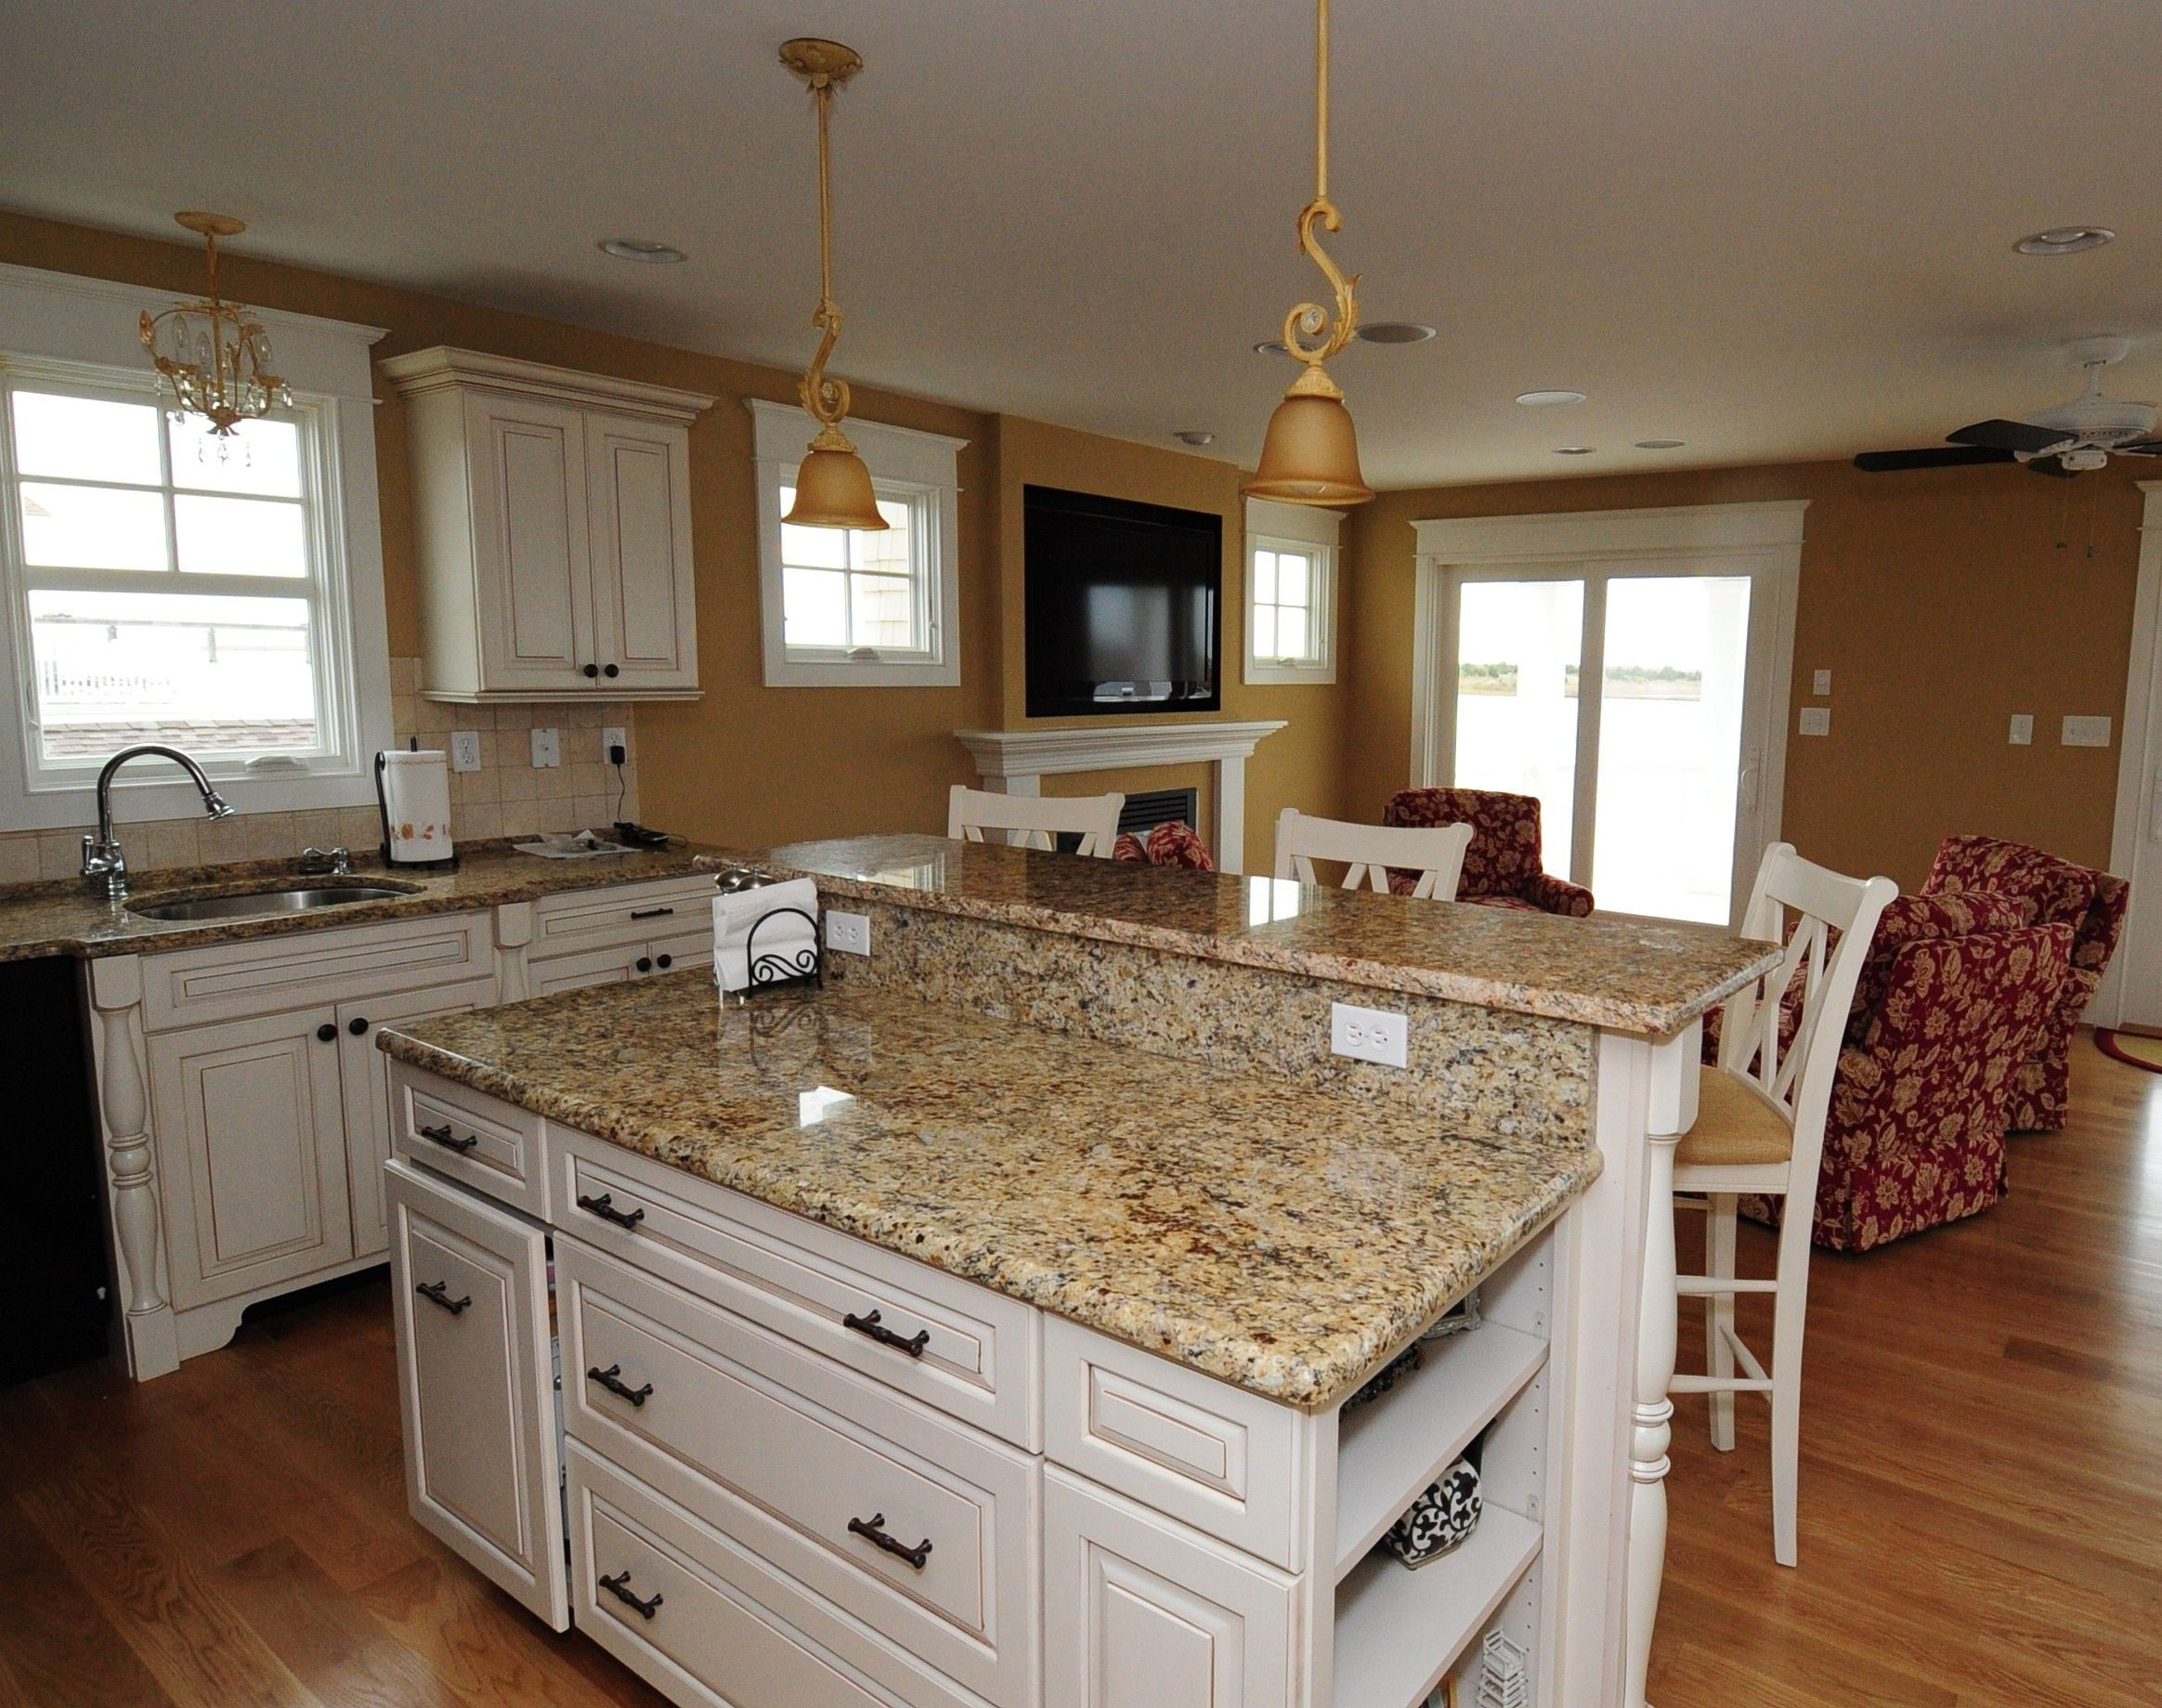 Tropic Brown Granite Countertops With White Cabinets Home Design Ideas Brown Granite Countertops Kitchen Cabinet Design White Cabinets With Granite